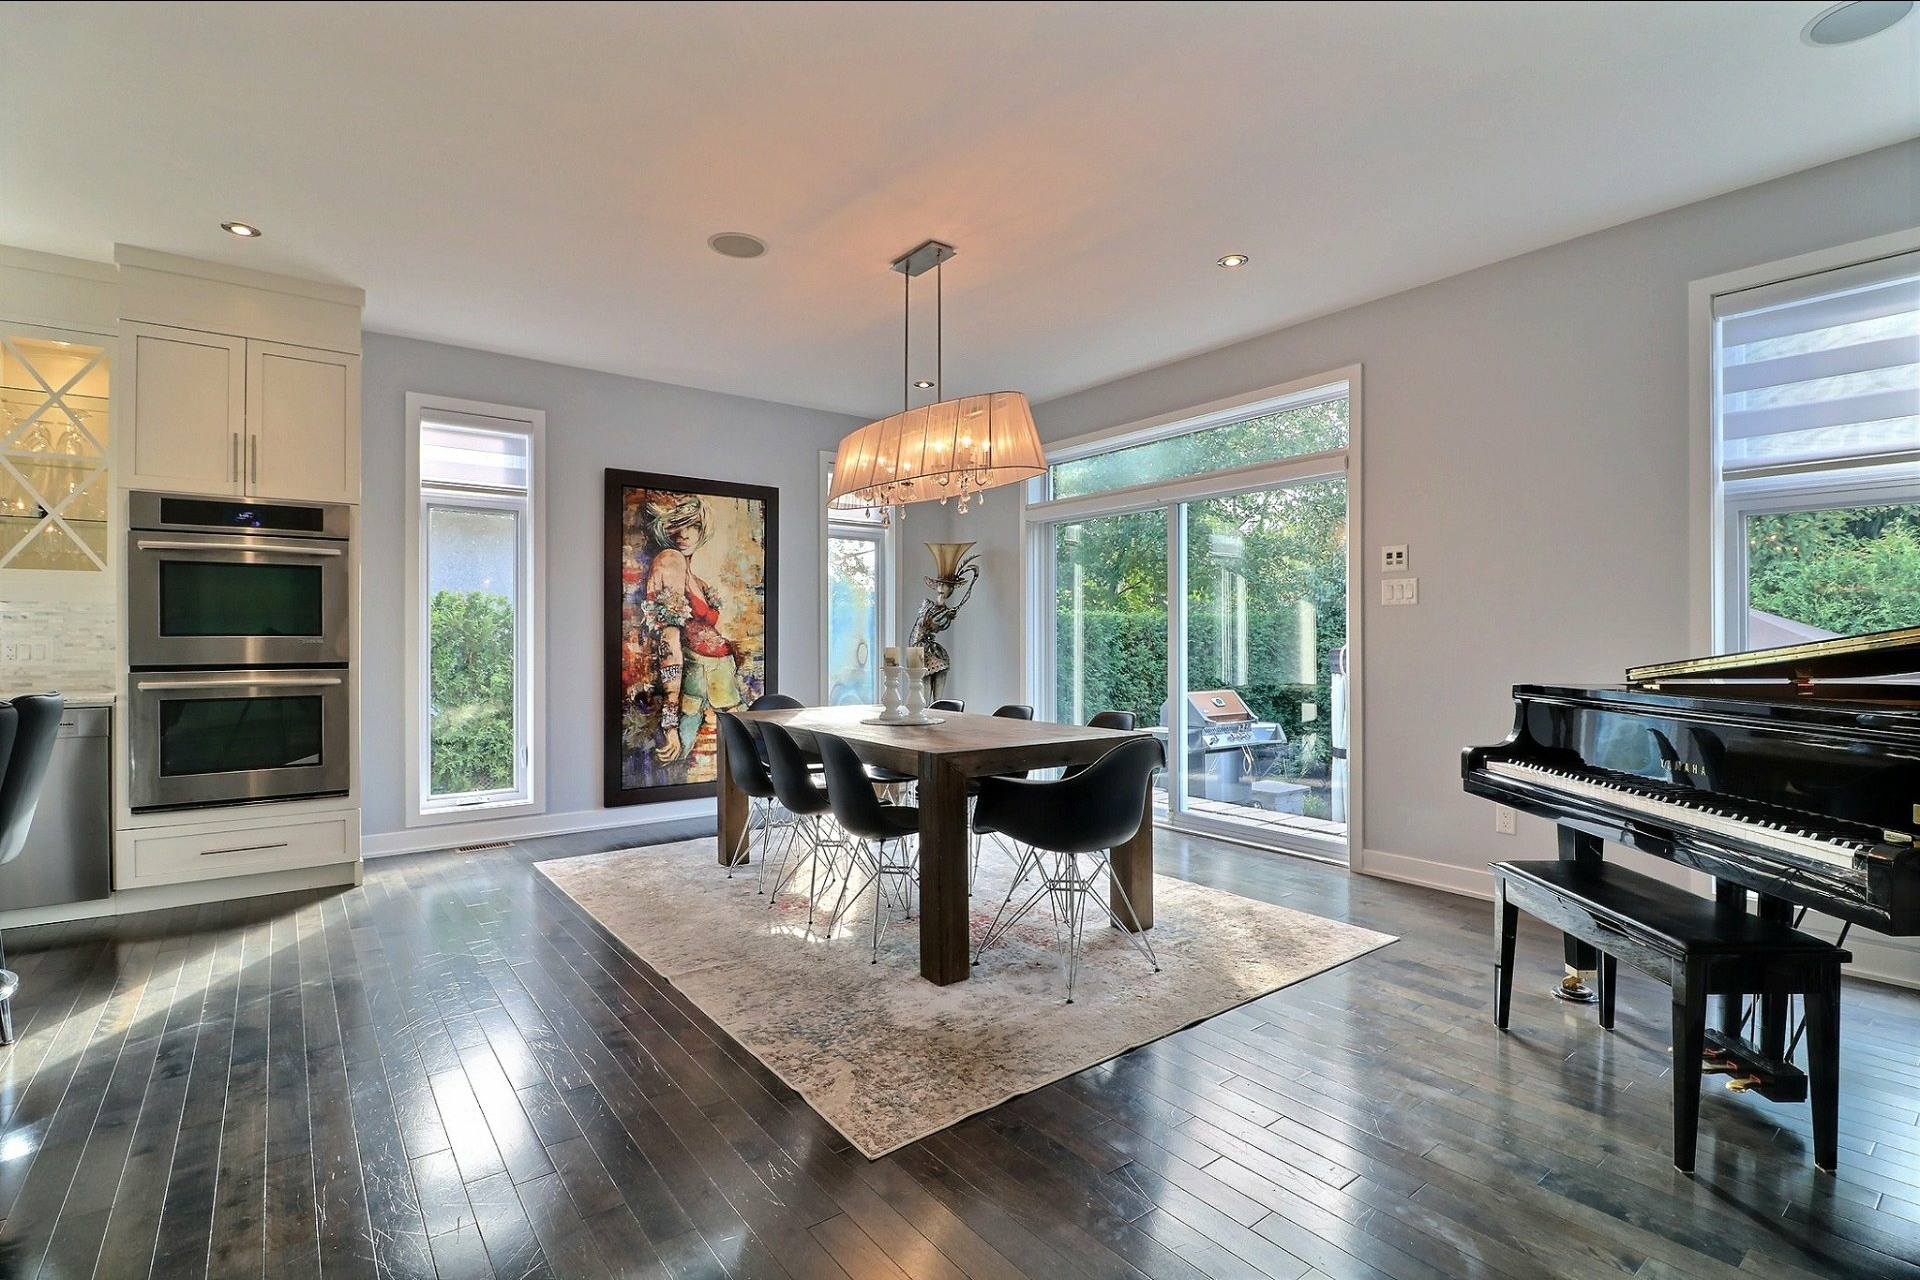 image 4 - House For sale Blainville - 13 rooms